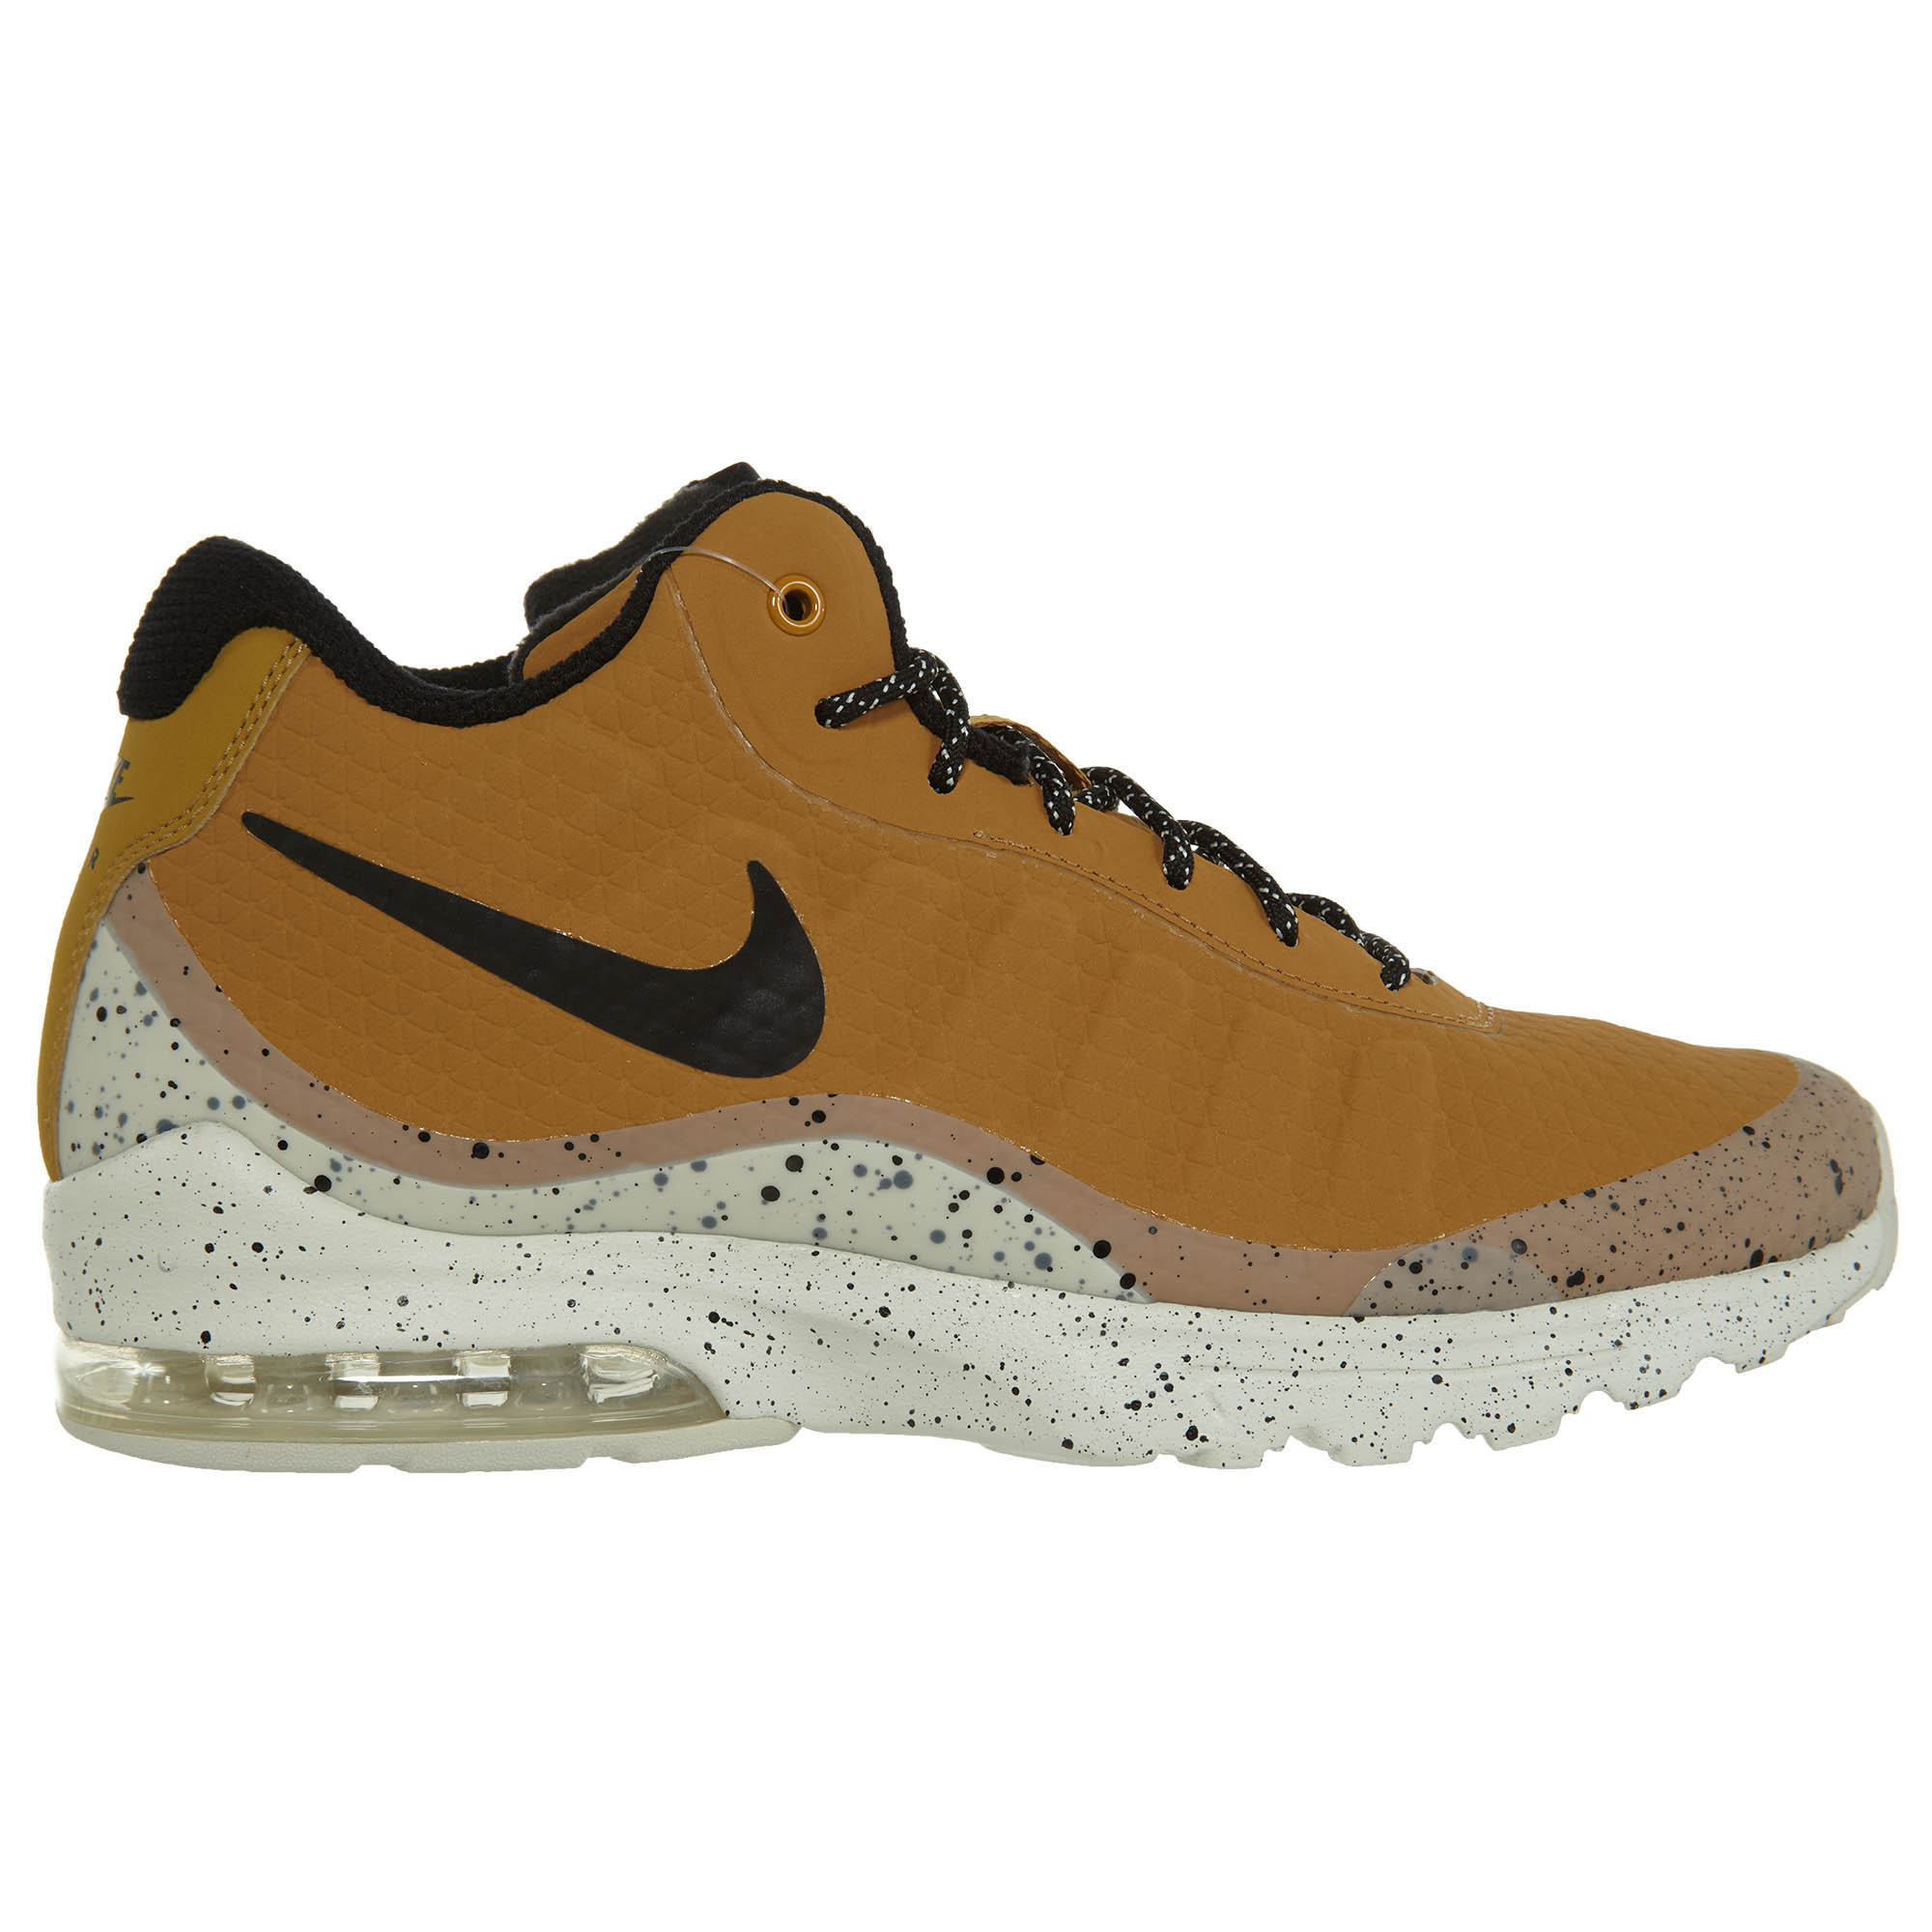 Nike Air Max Invigor Mid Wheat Black Light Bone 858654 700